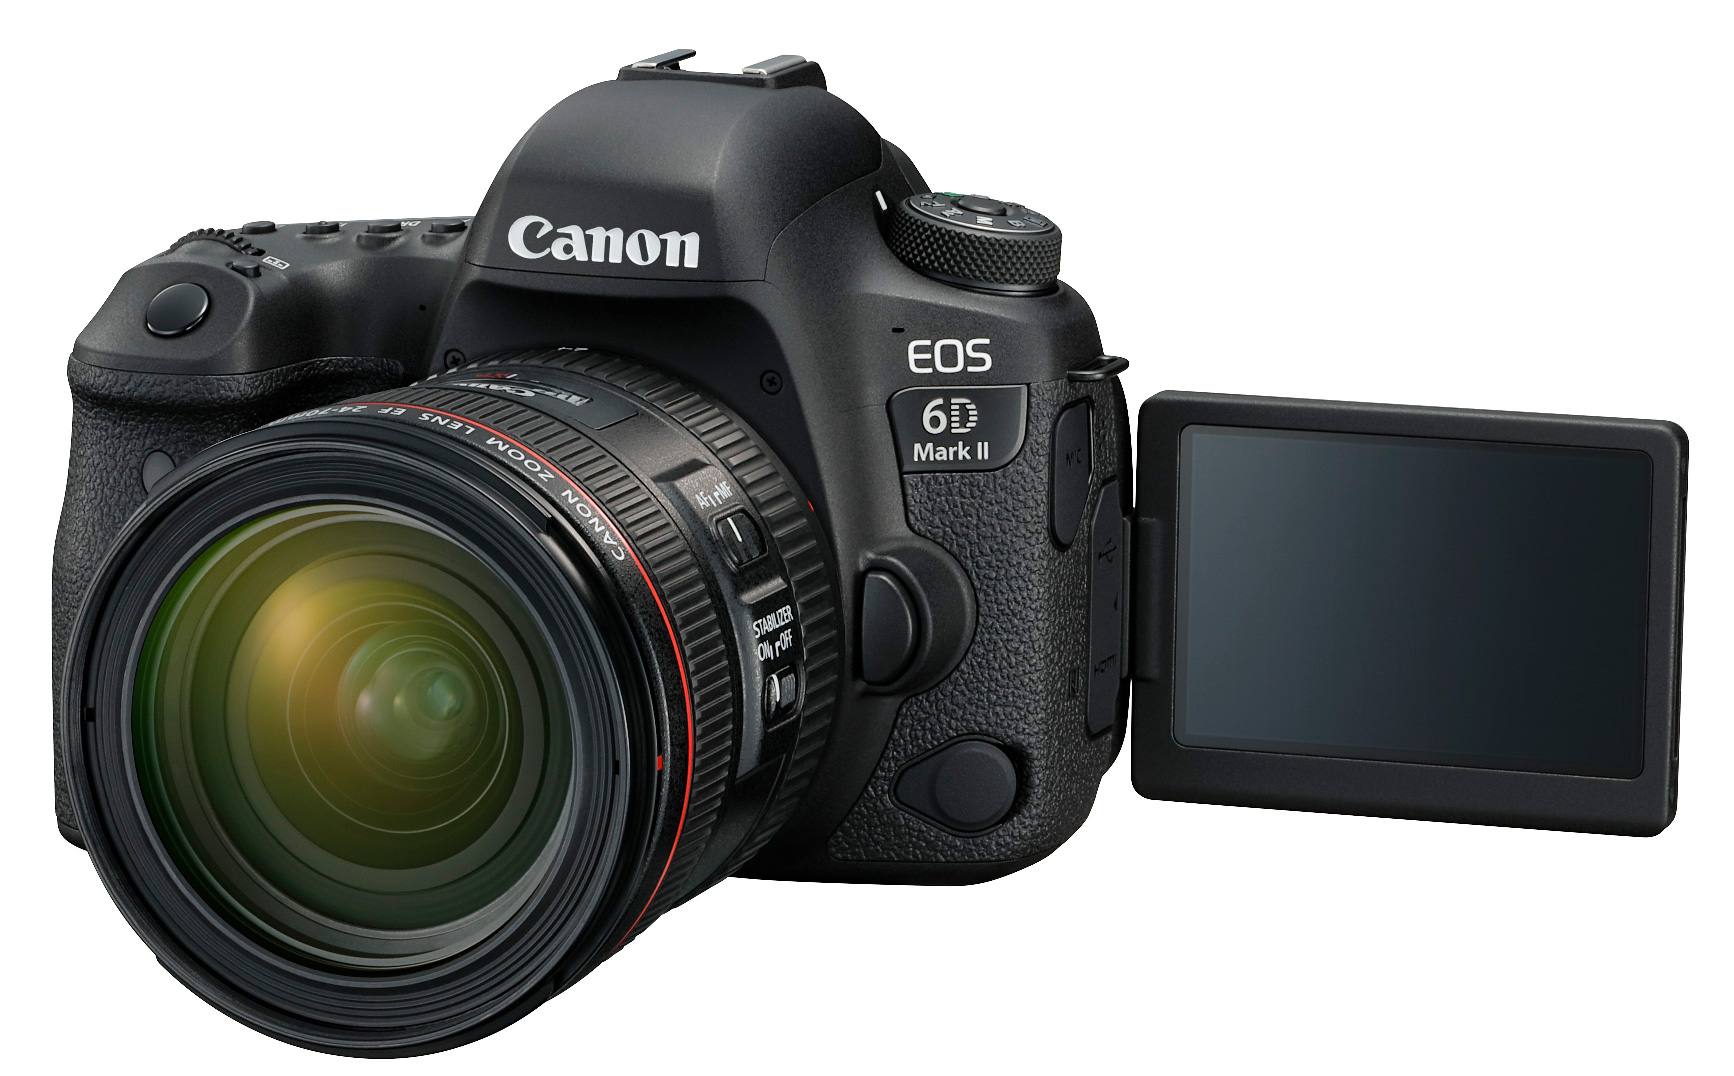 New Canon DSLRs without 4K EOS 6D Mk2 and EOS 200D